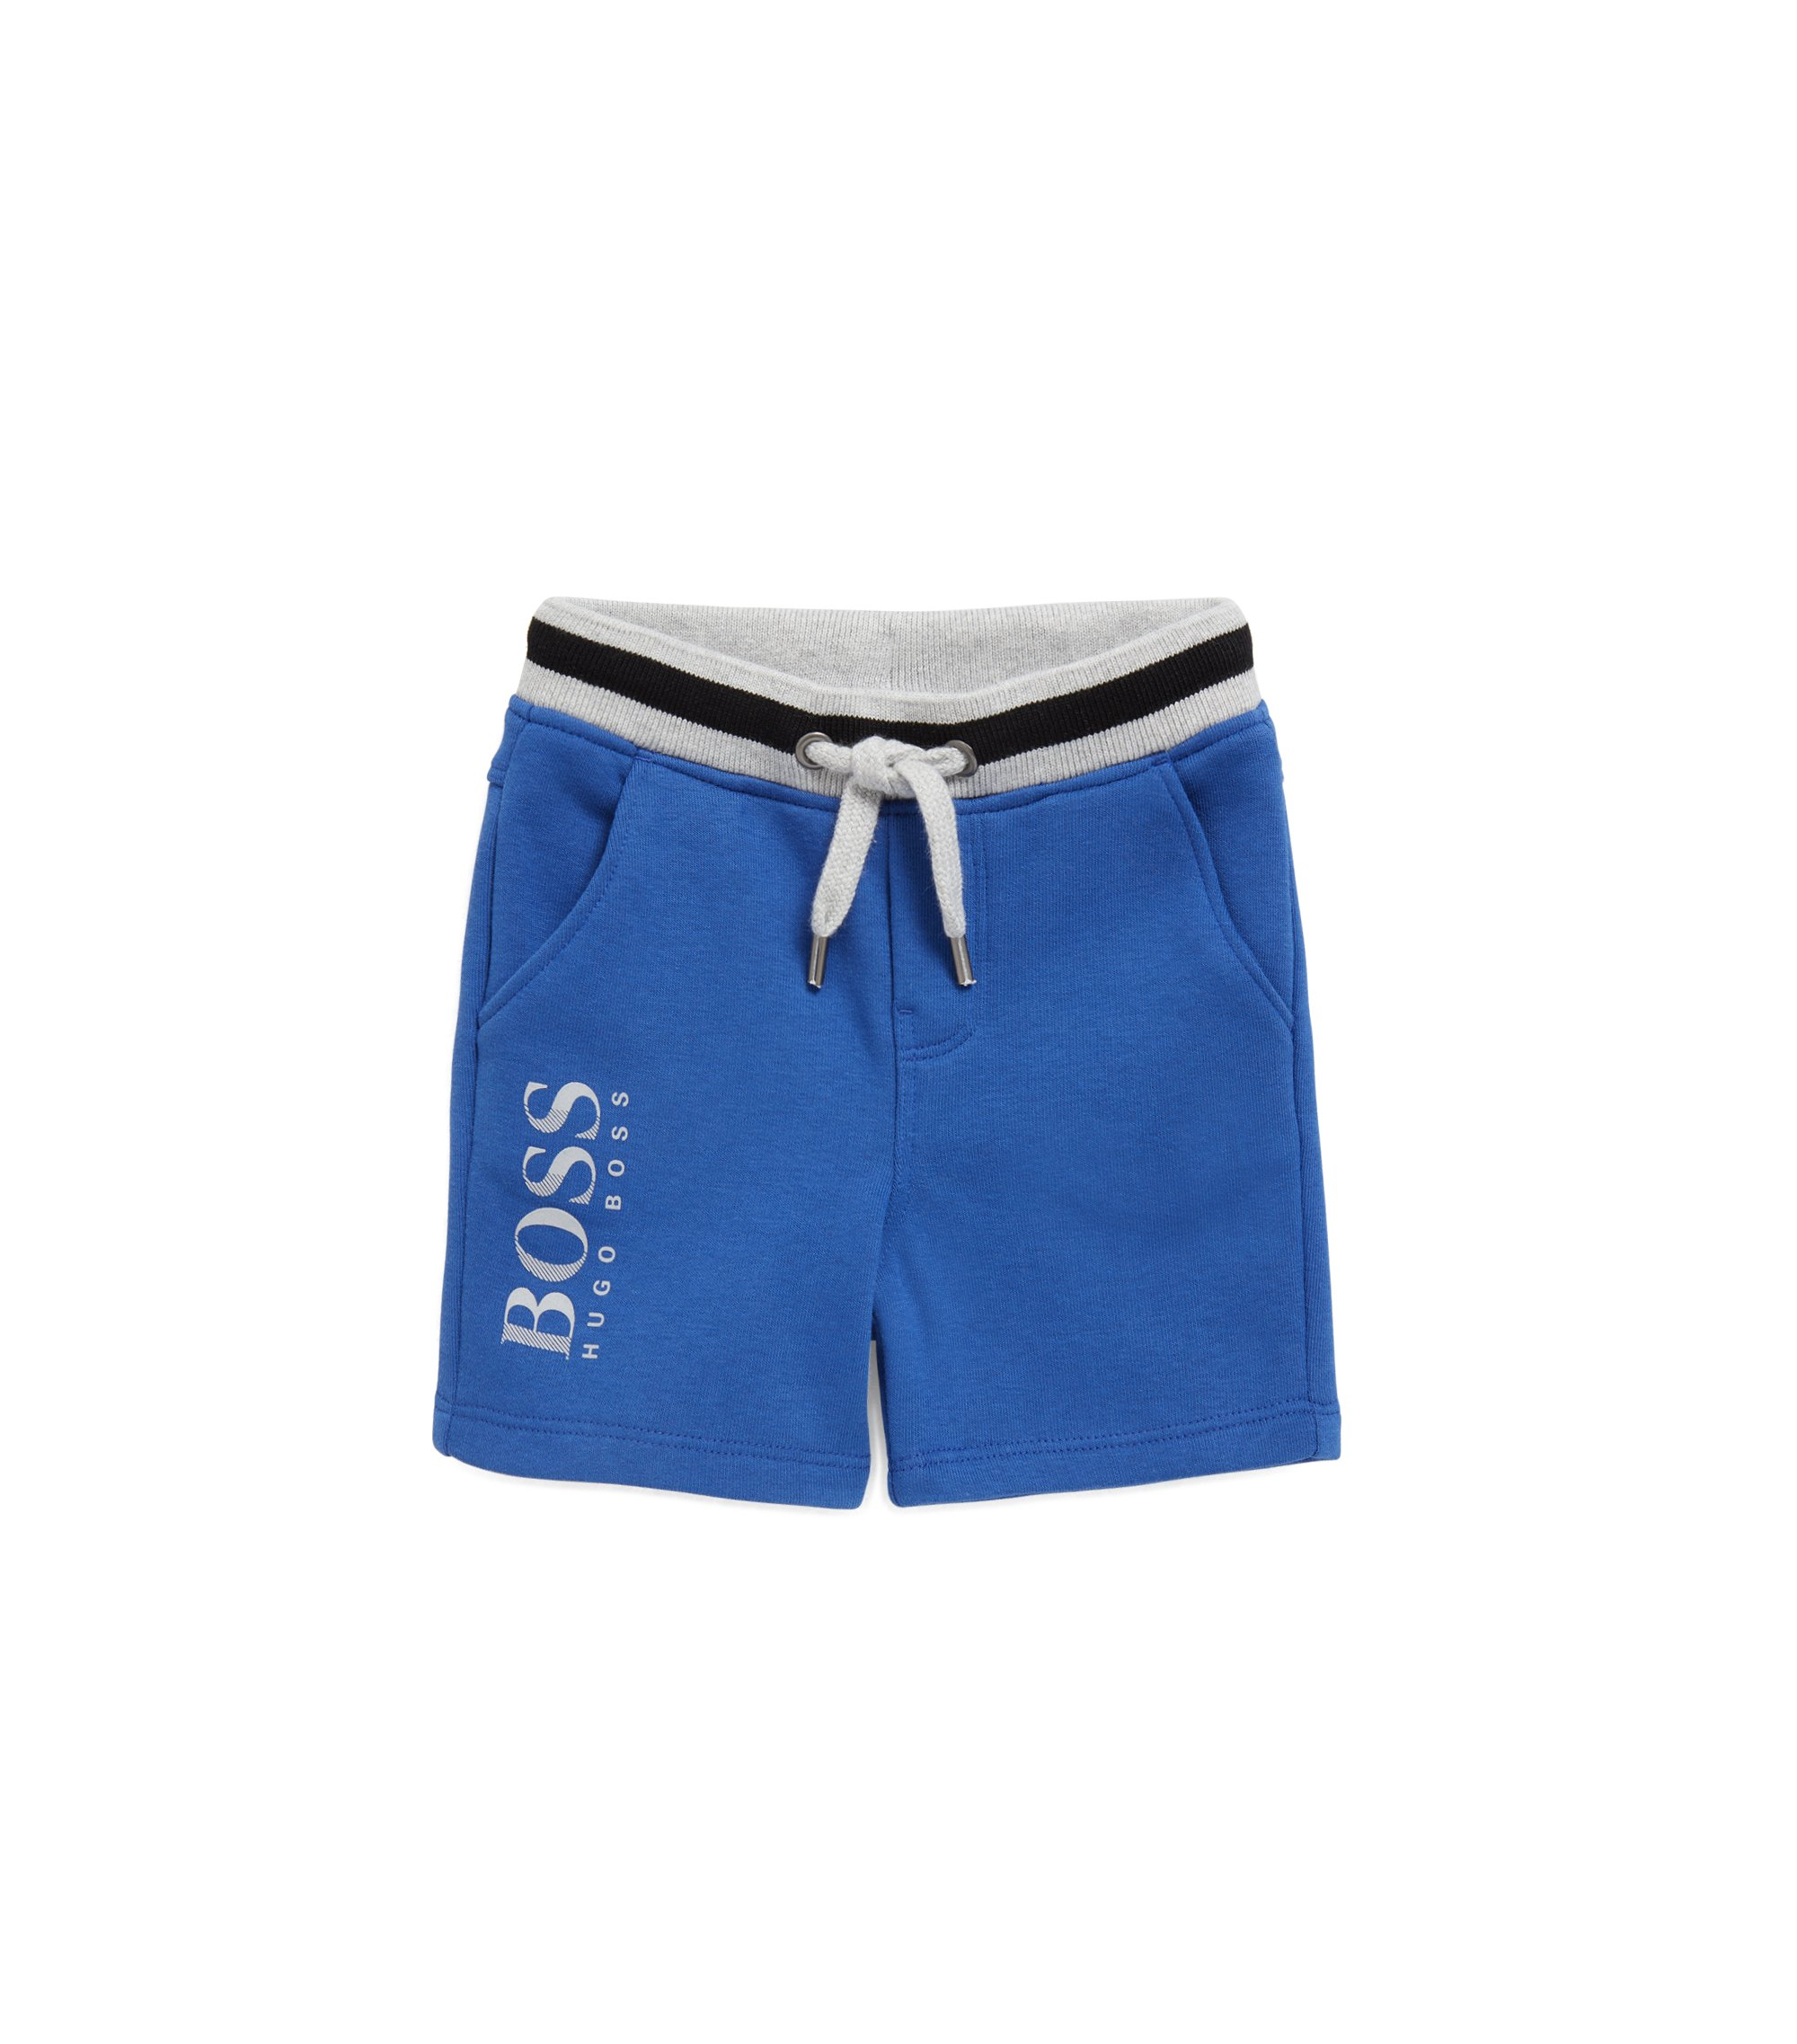 Kids' Bermuda shorts in French terry, Blue